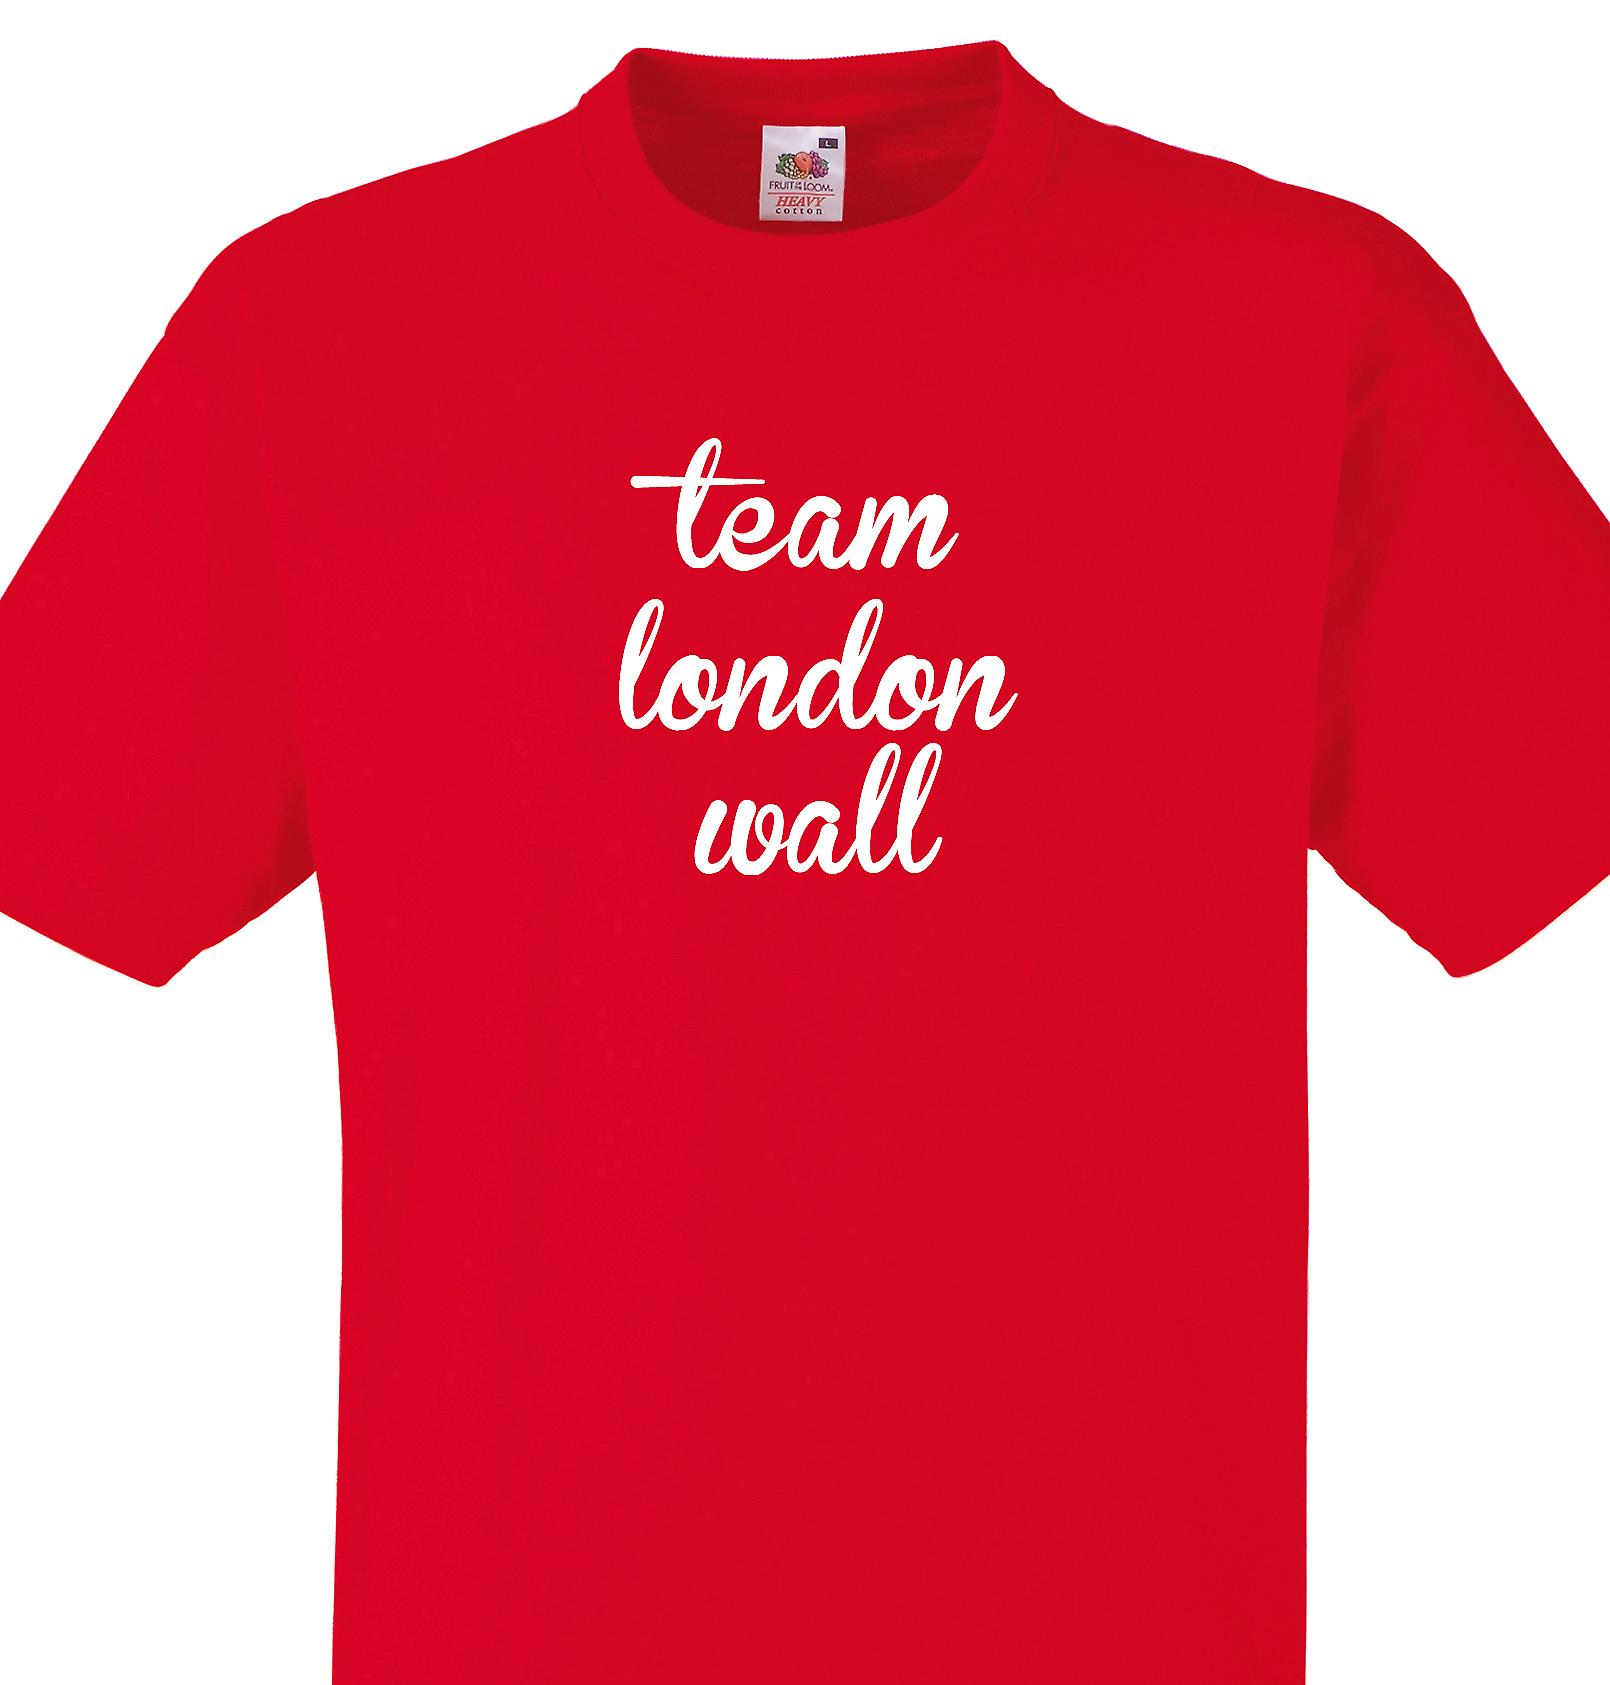 Team London wall Red T shirt